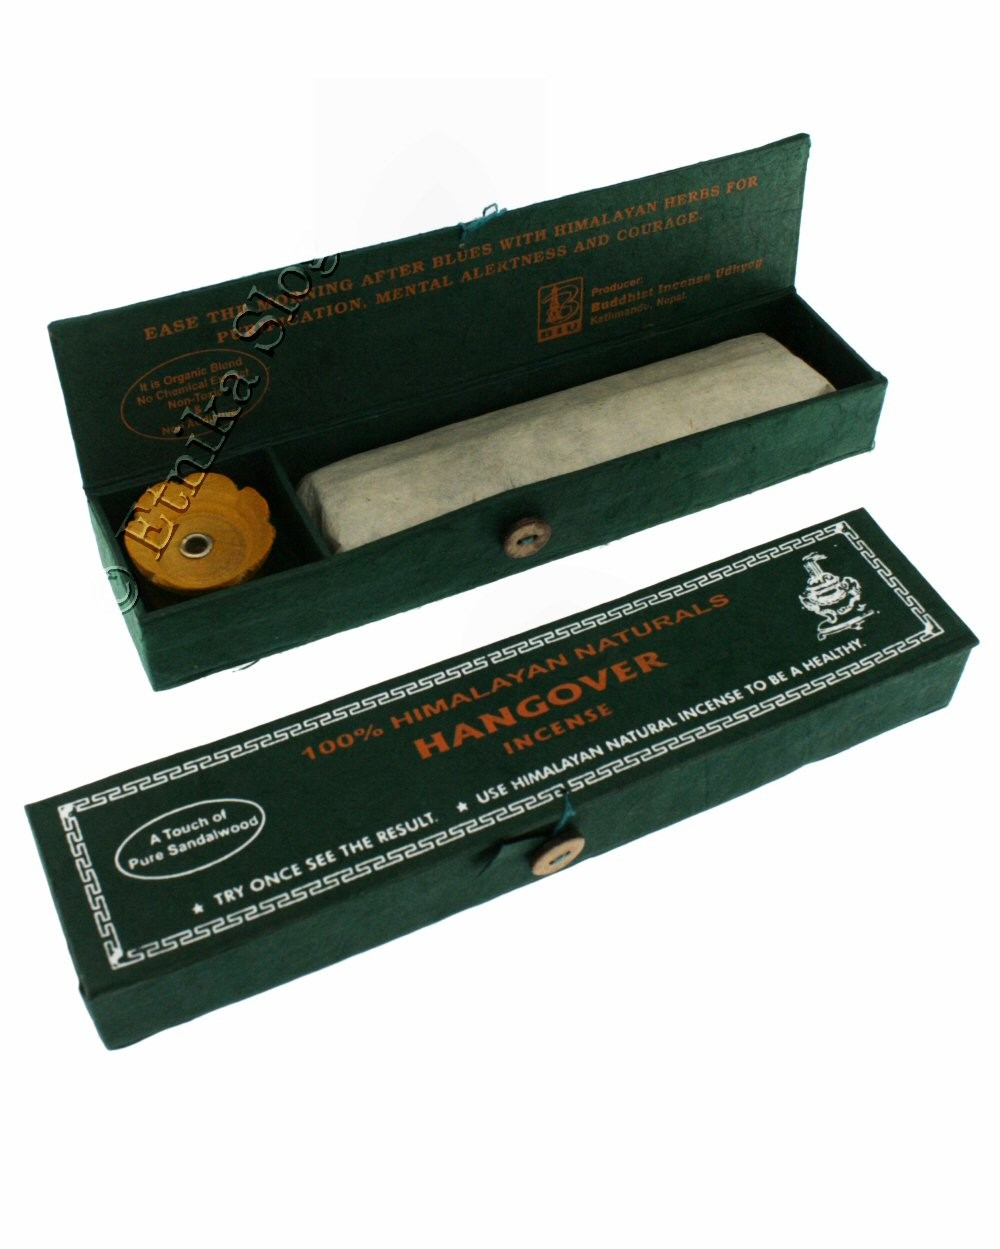 TIBETAN INCENSE AND INCENSE HOLDERS INC-BT016-04 - Oriente Import S.r.l.